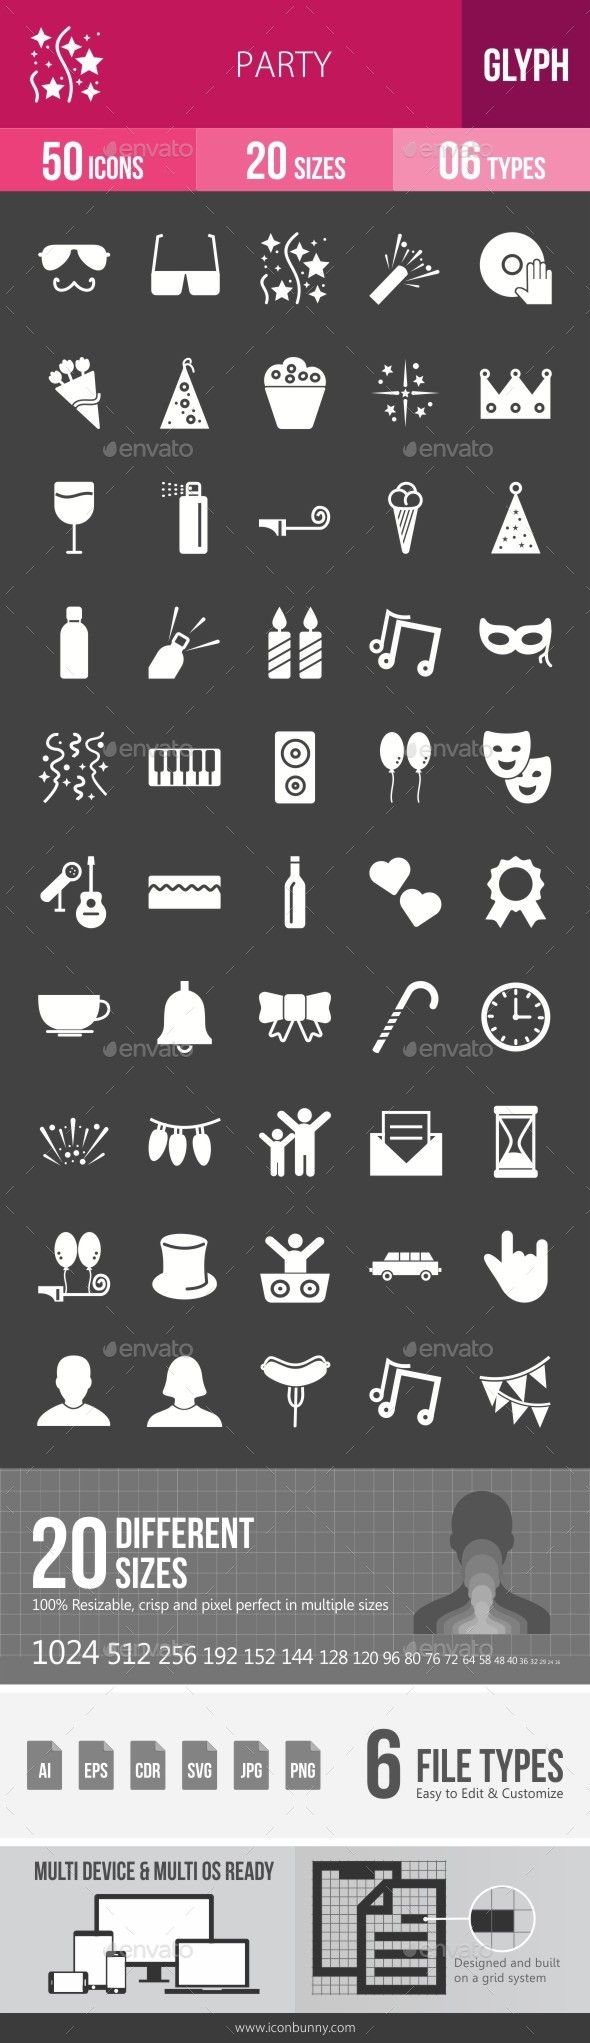 Party Glyph Inverted Icons - Icons